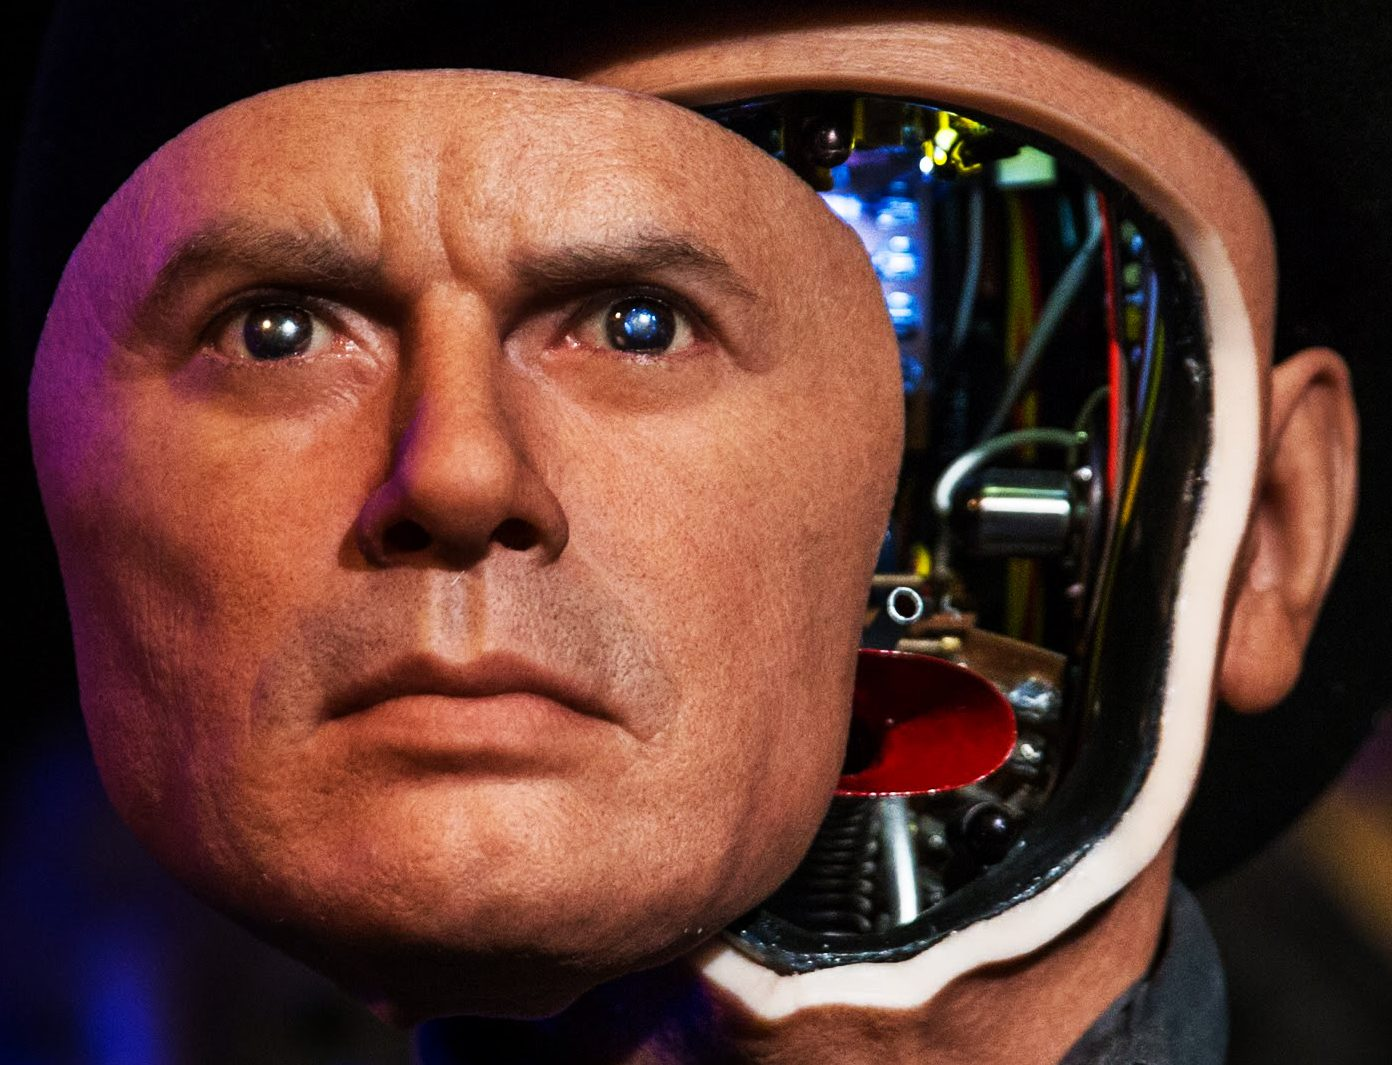 westworld yul brynner e1605528942791 20 Films Set In Futures Past: What They Got Right (And Wrong) About The World We Live In